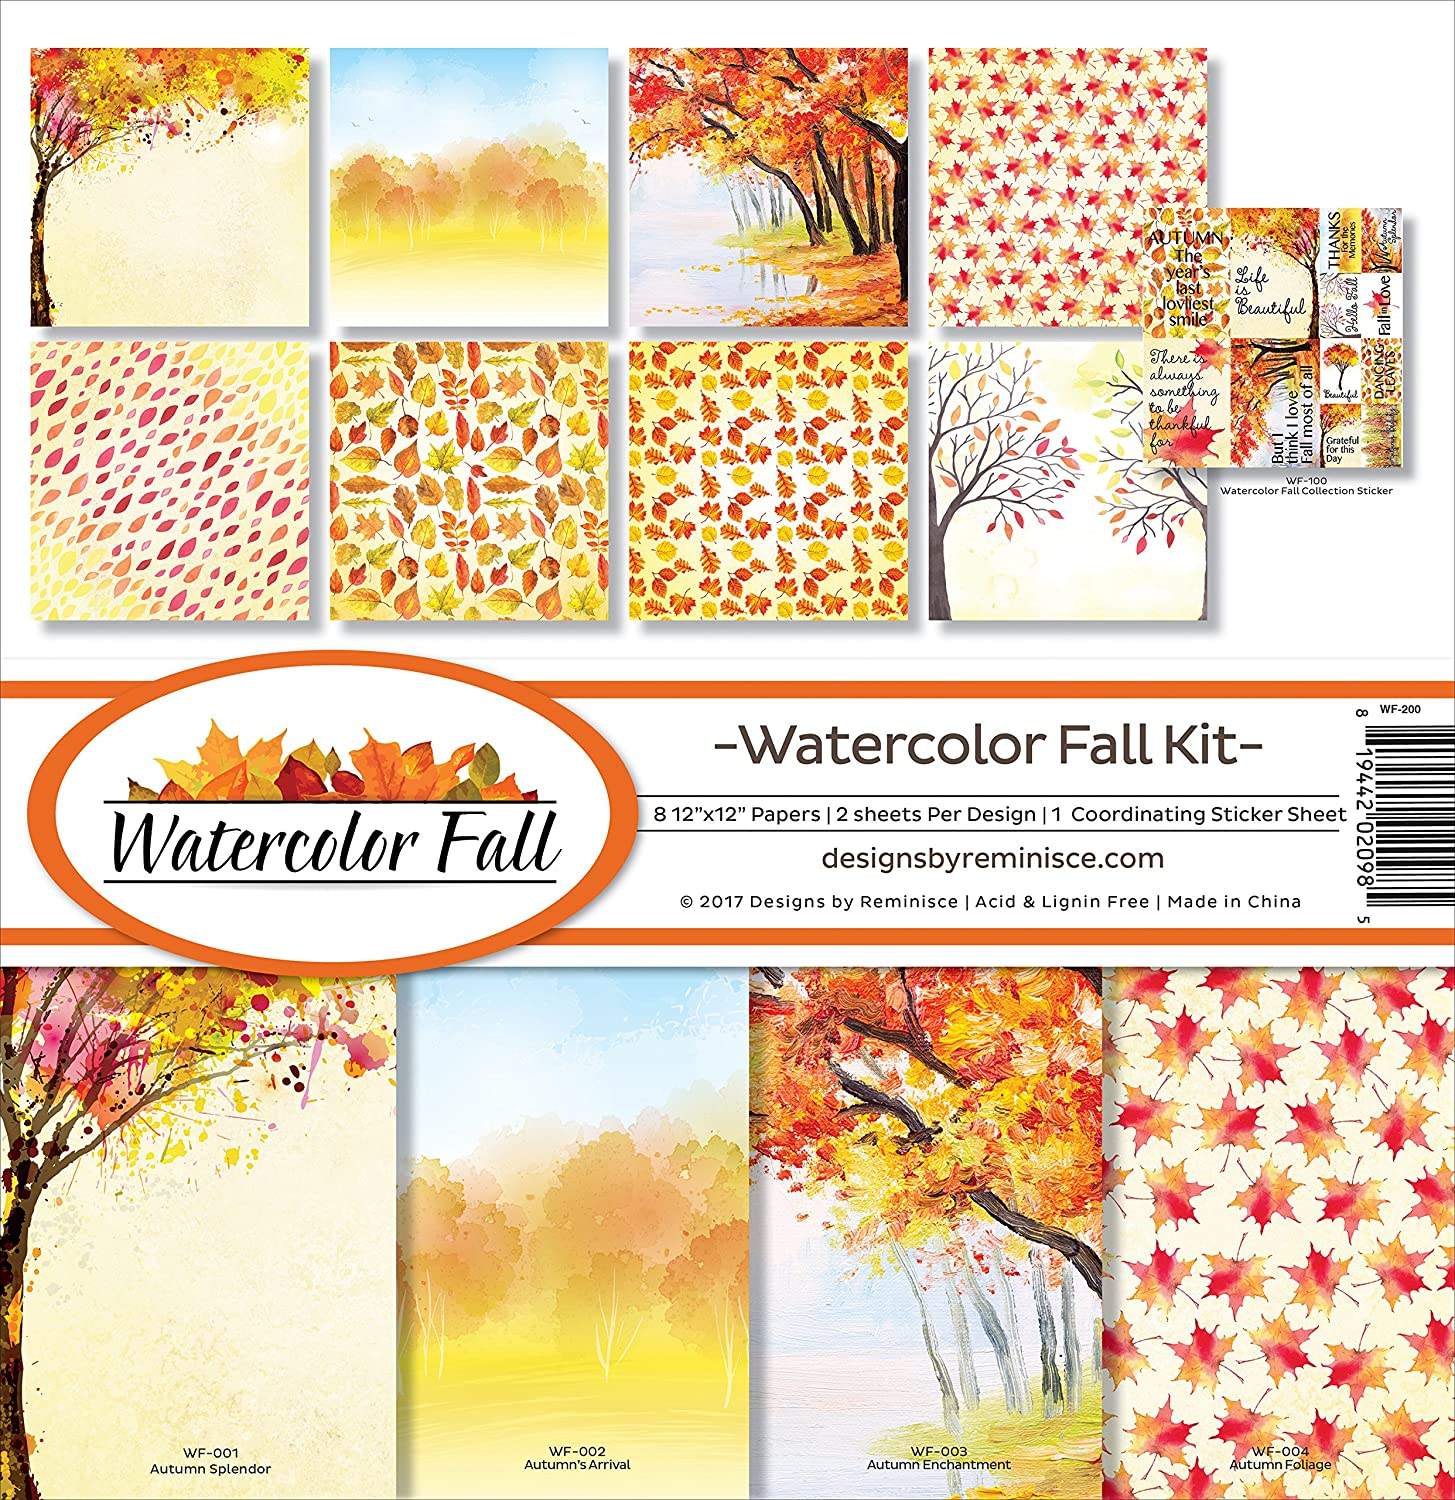 Reminisce Watercolor Fall Scrapbook Collection Kit